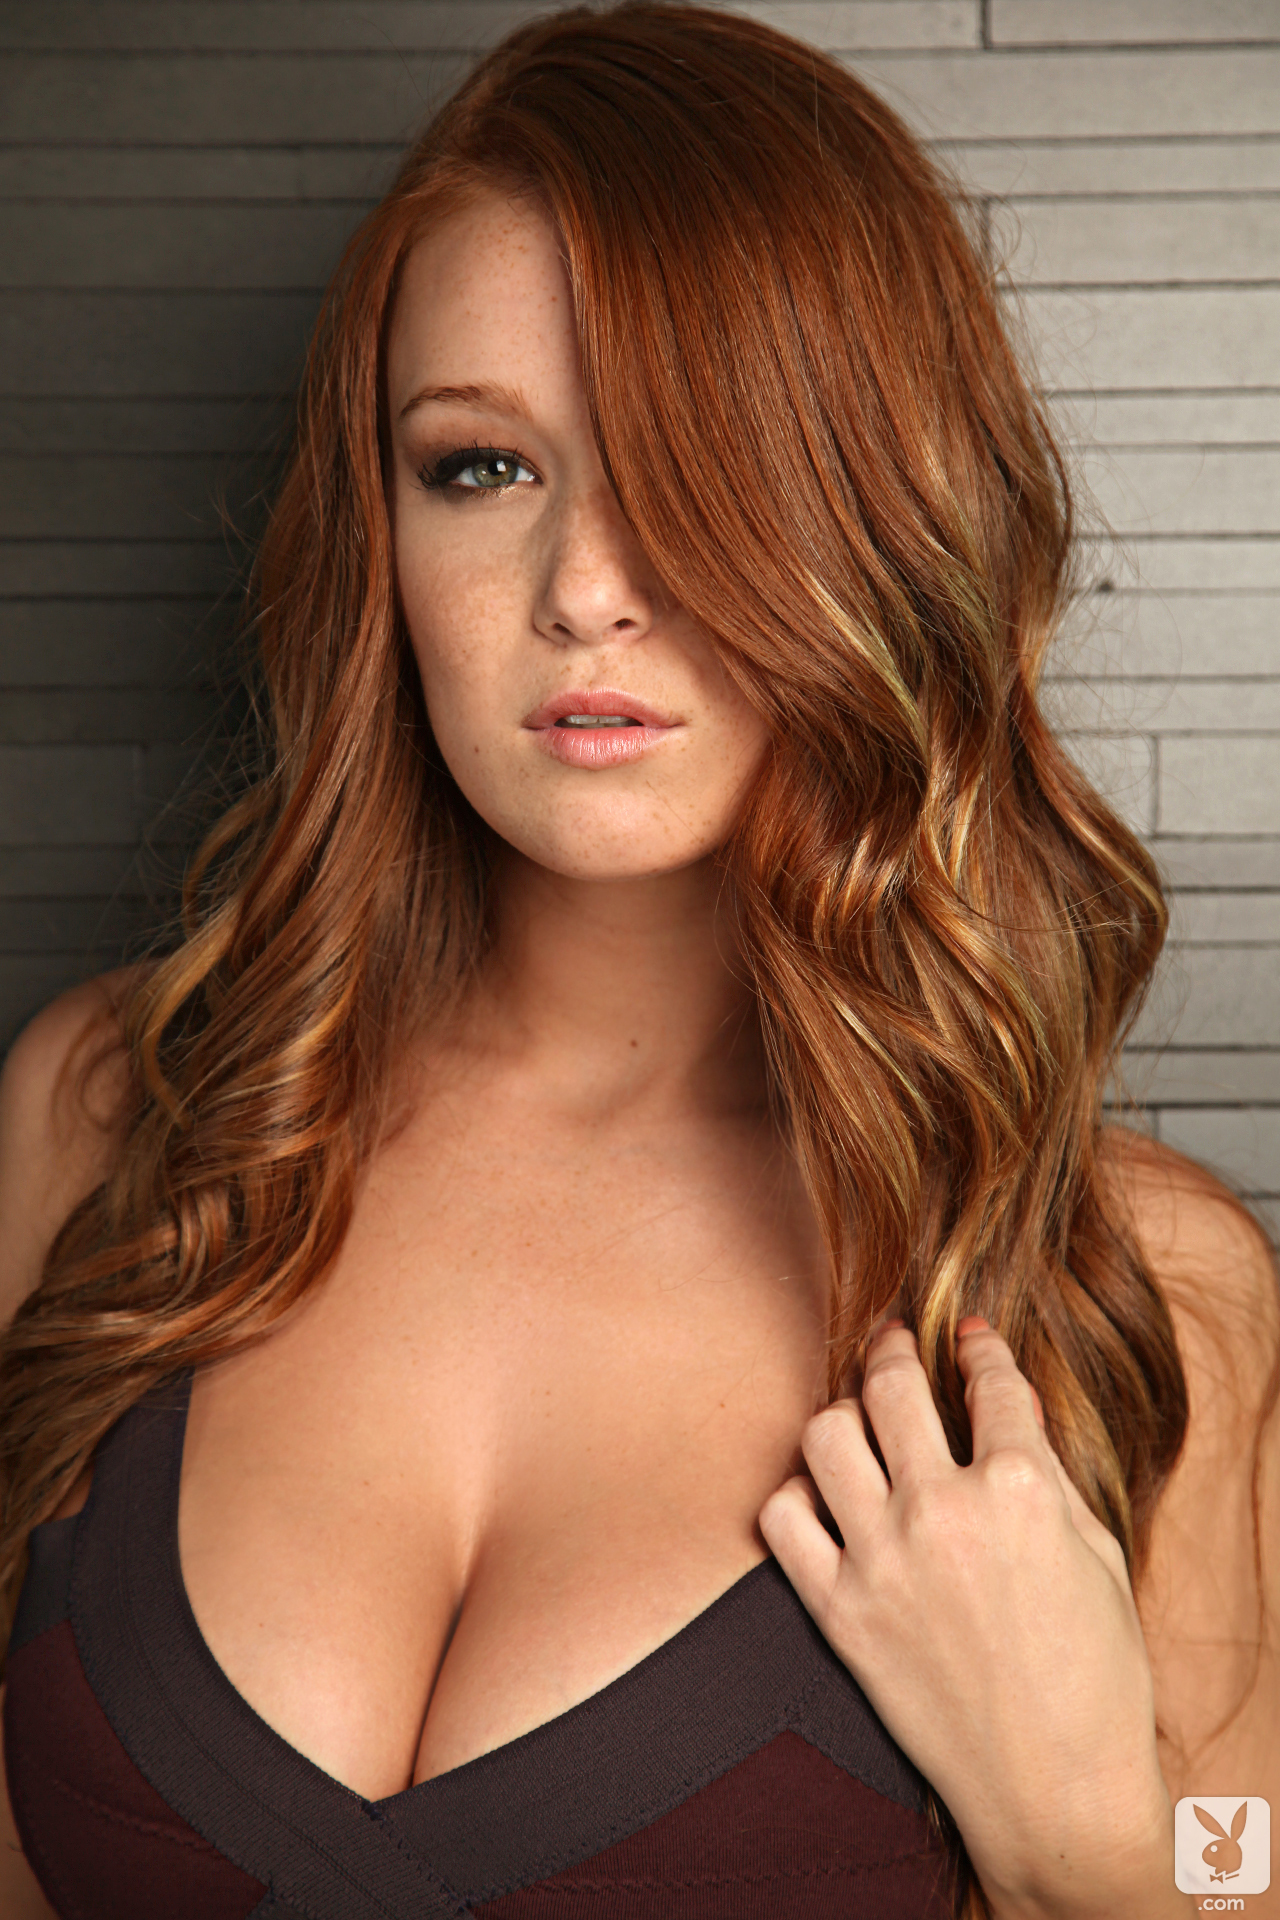 leanna-decker-nude-i-wanna-be-watched-08